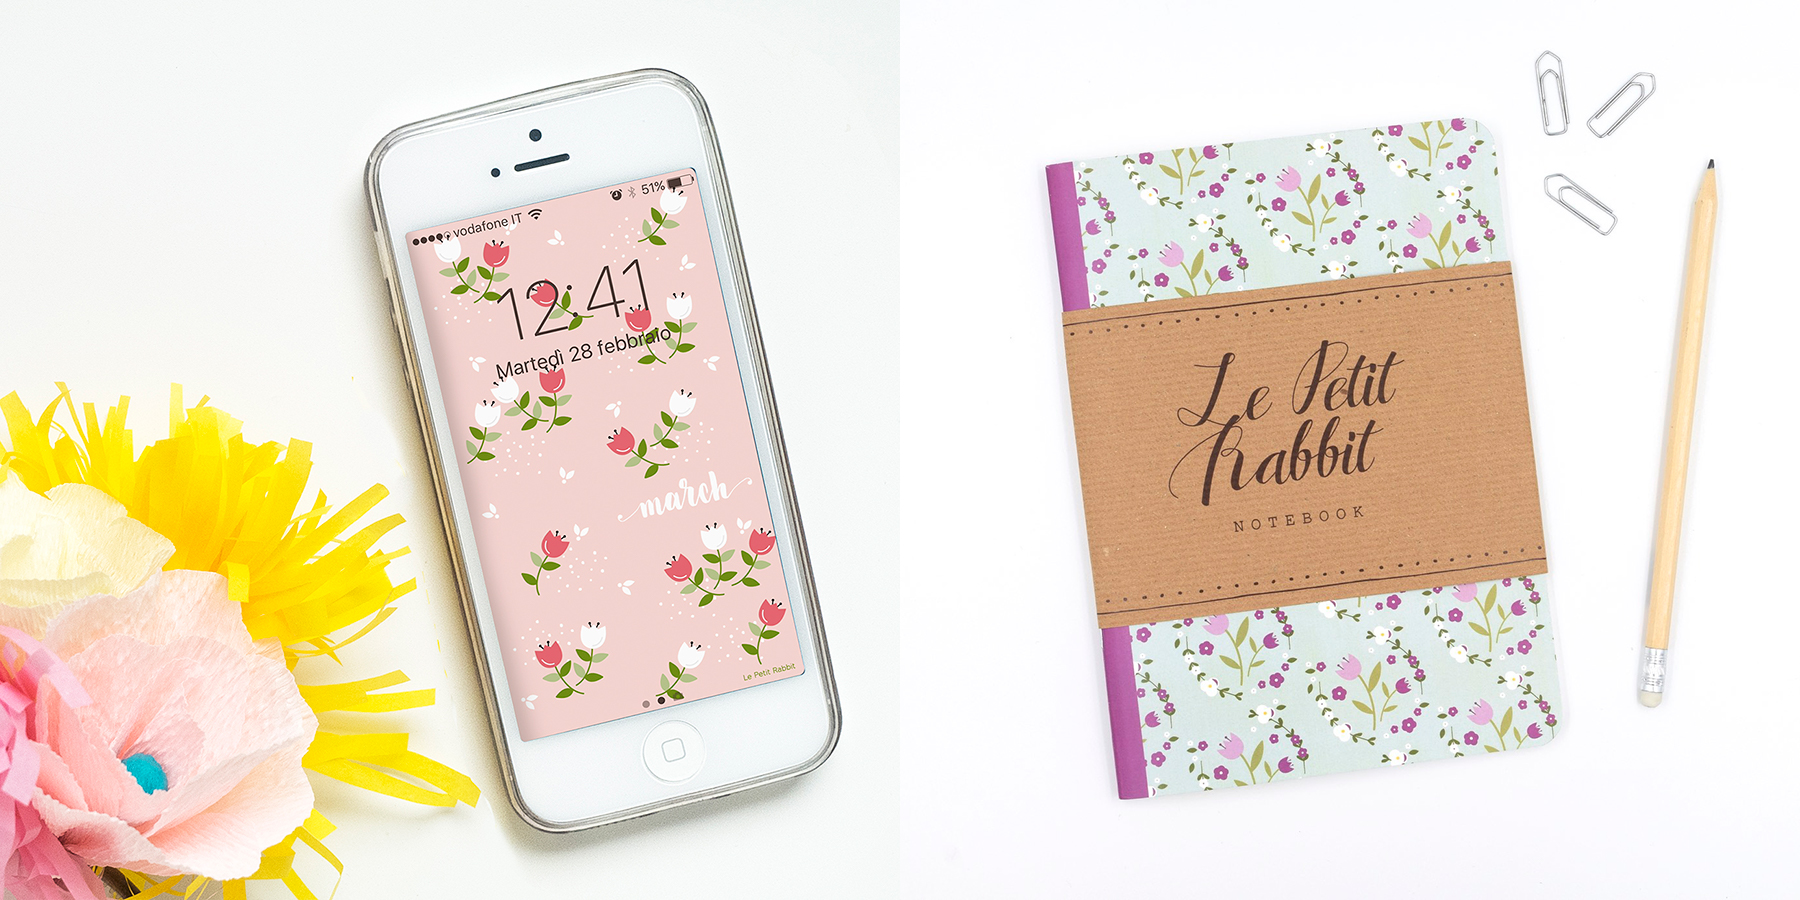 Graphic Design with Love by Giulia from Le Petit Rabbit